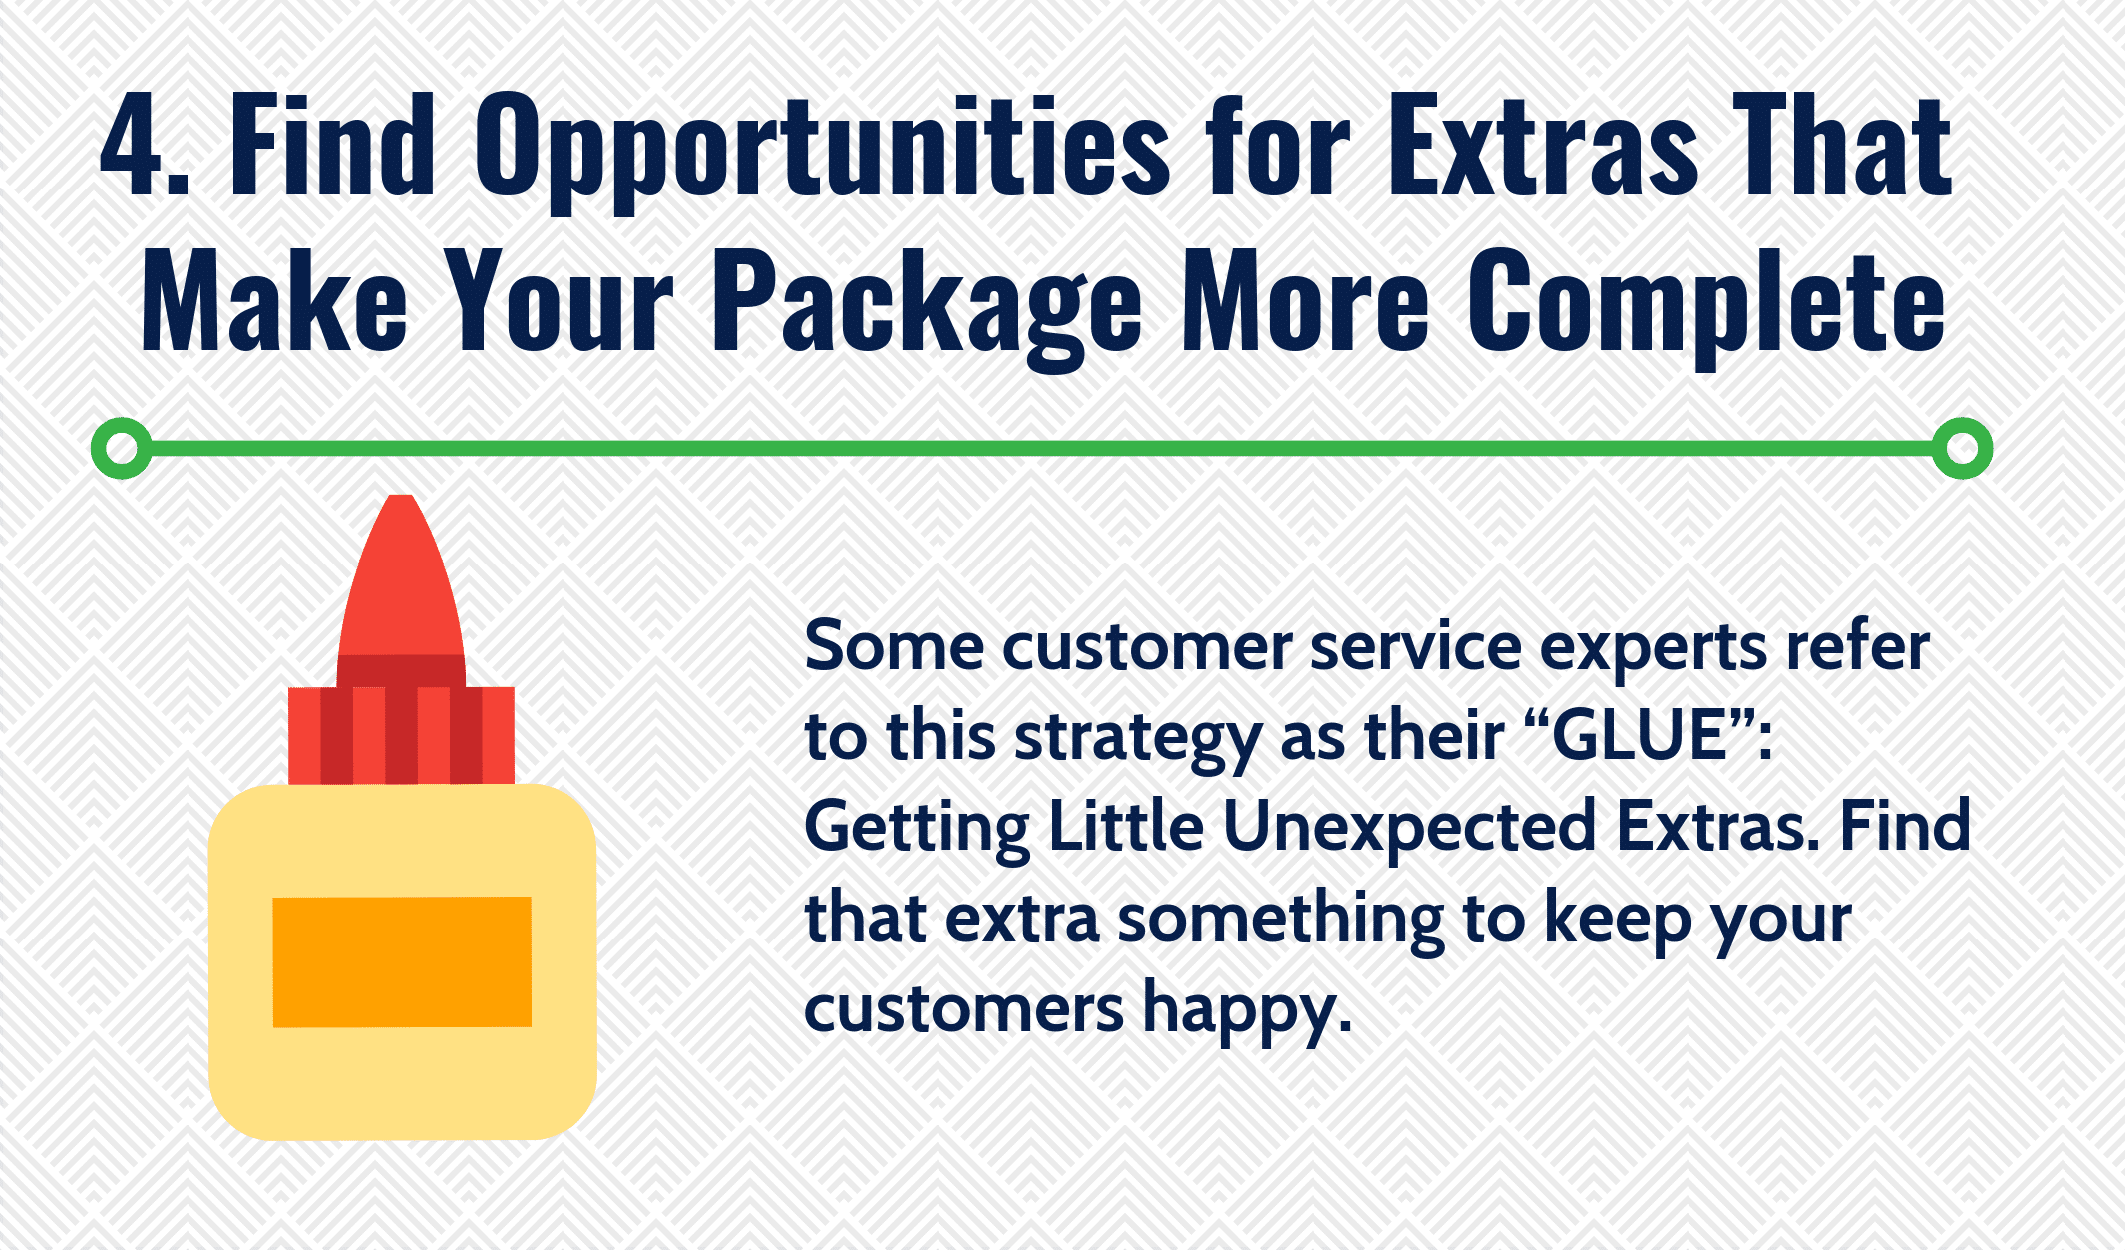 Find Opportunities for Extras That Make Your Package More Complete